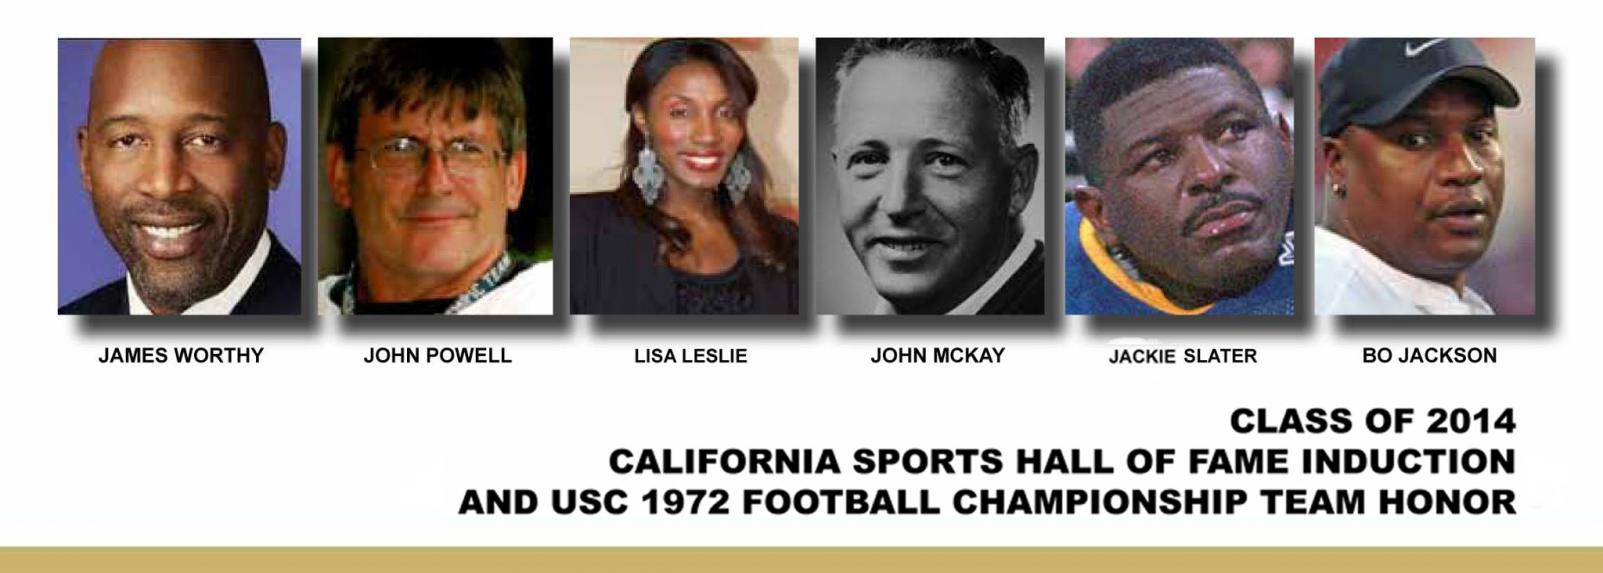 California Sports Hall of Fame 2014 Inductees